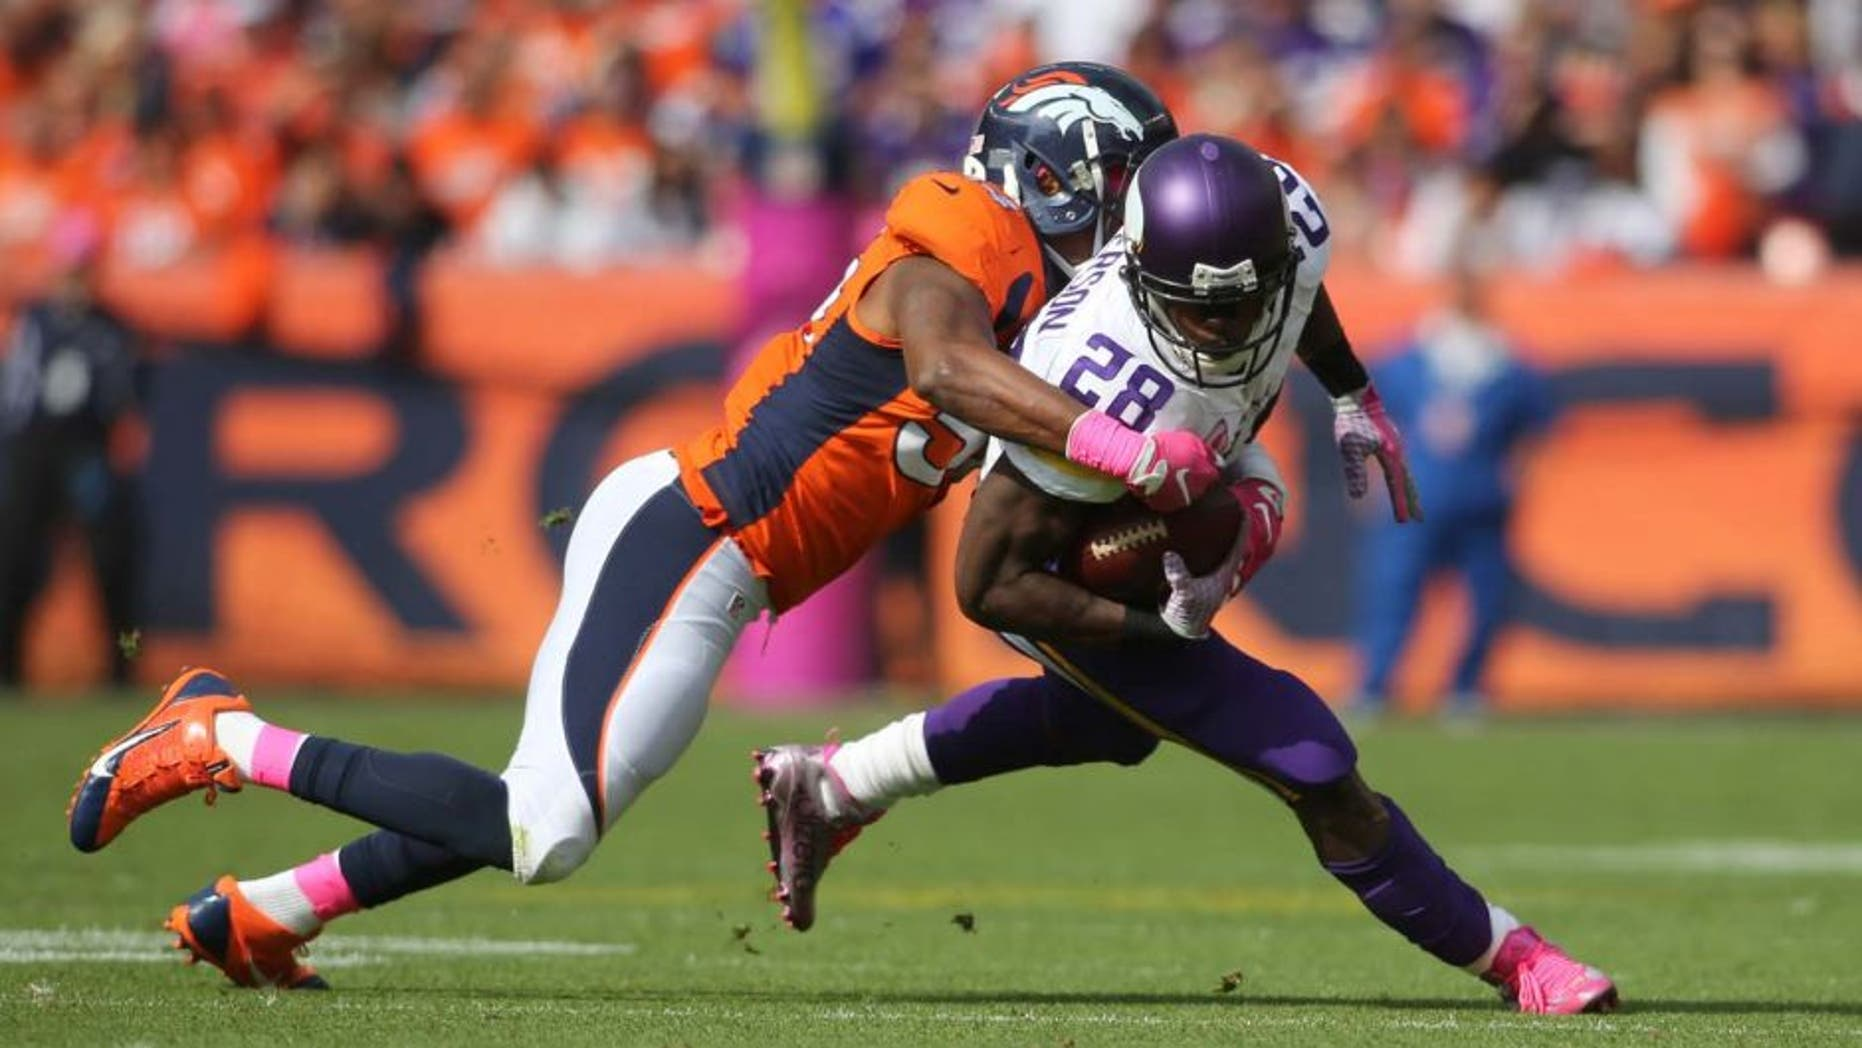 Minnesota Vikings running back Adrian Peterson is taken down by Denver Broncos inside linebacker Brandon Marshall during the first half at Sports Authority Field at Mile High in Denver on Sunday, Oct. 4, 2015.